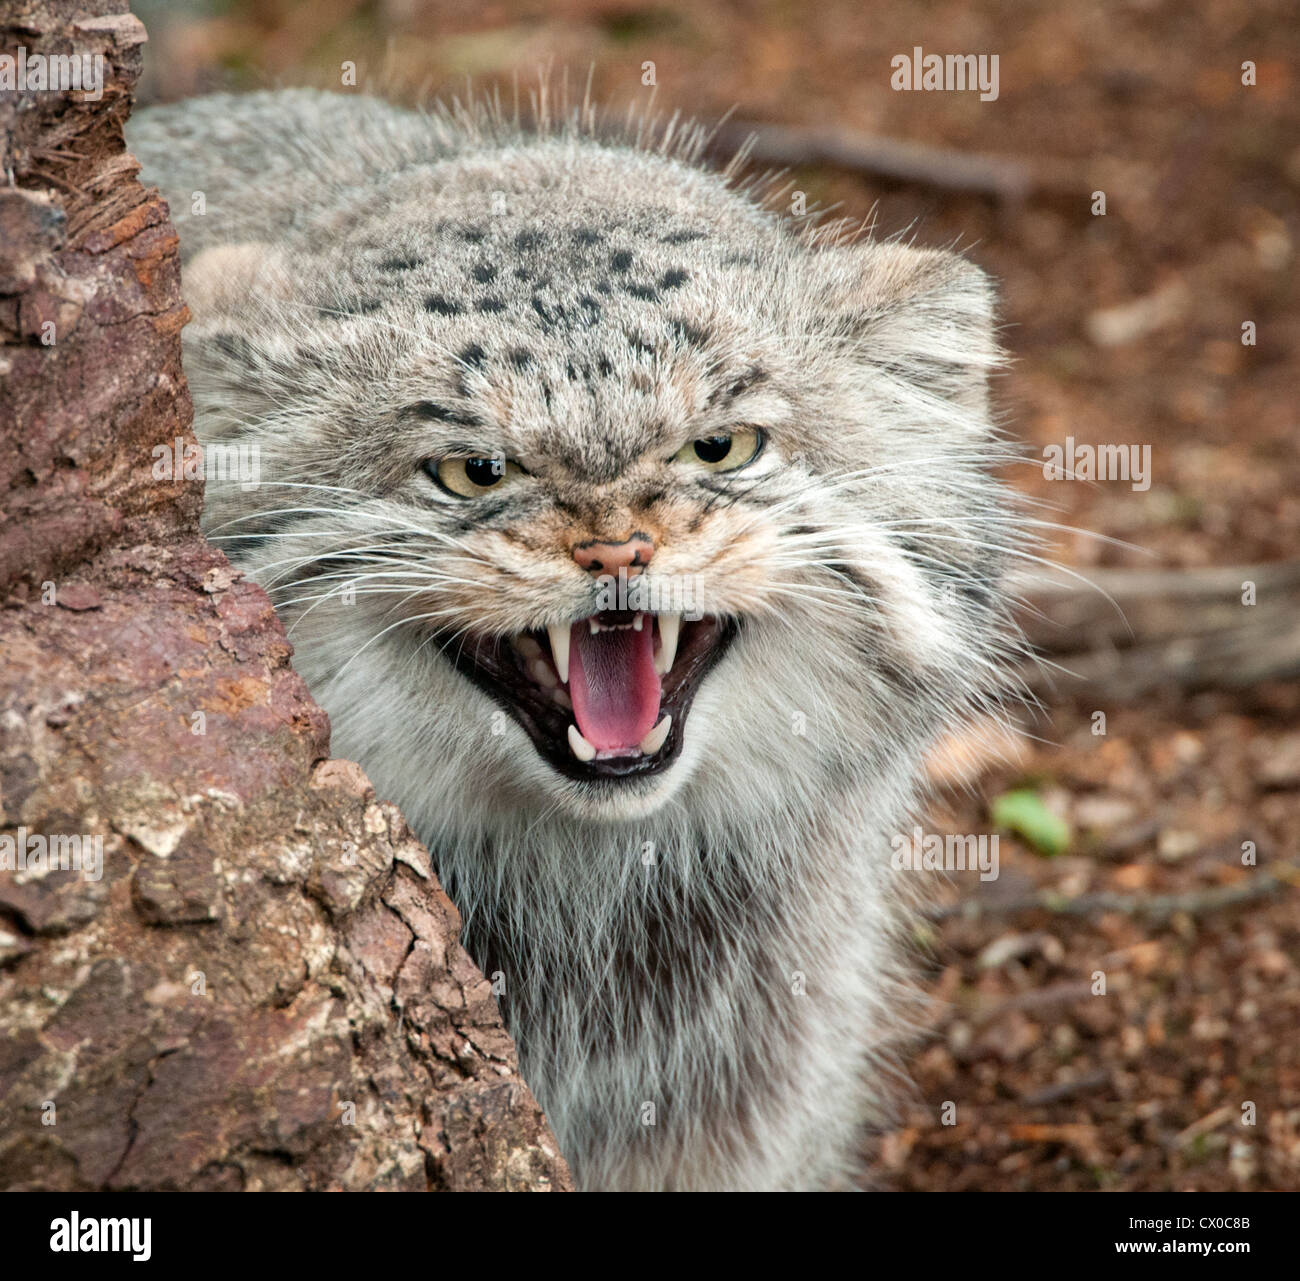 Pallas cat snarling - Stock Image